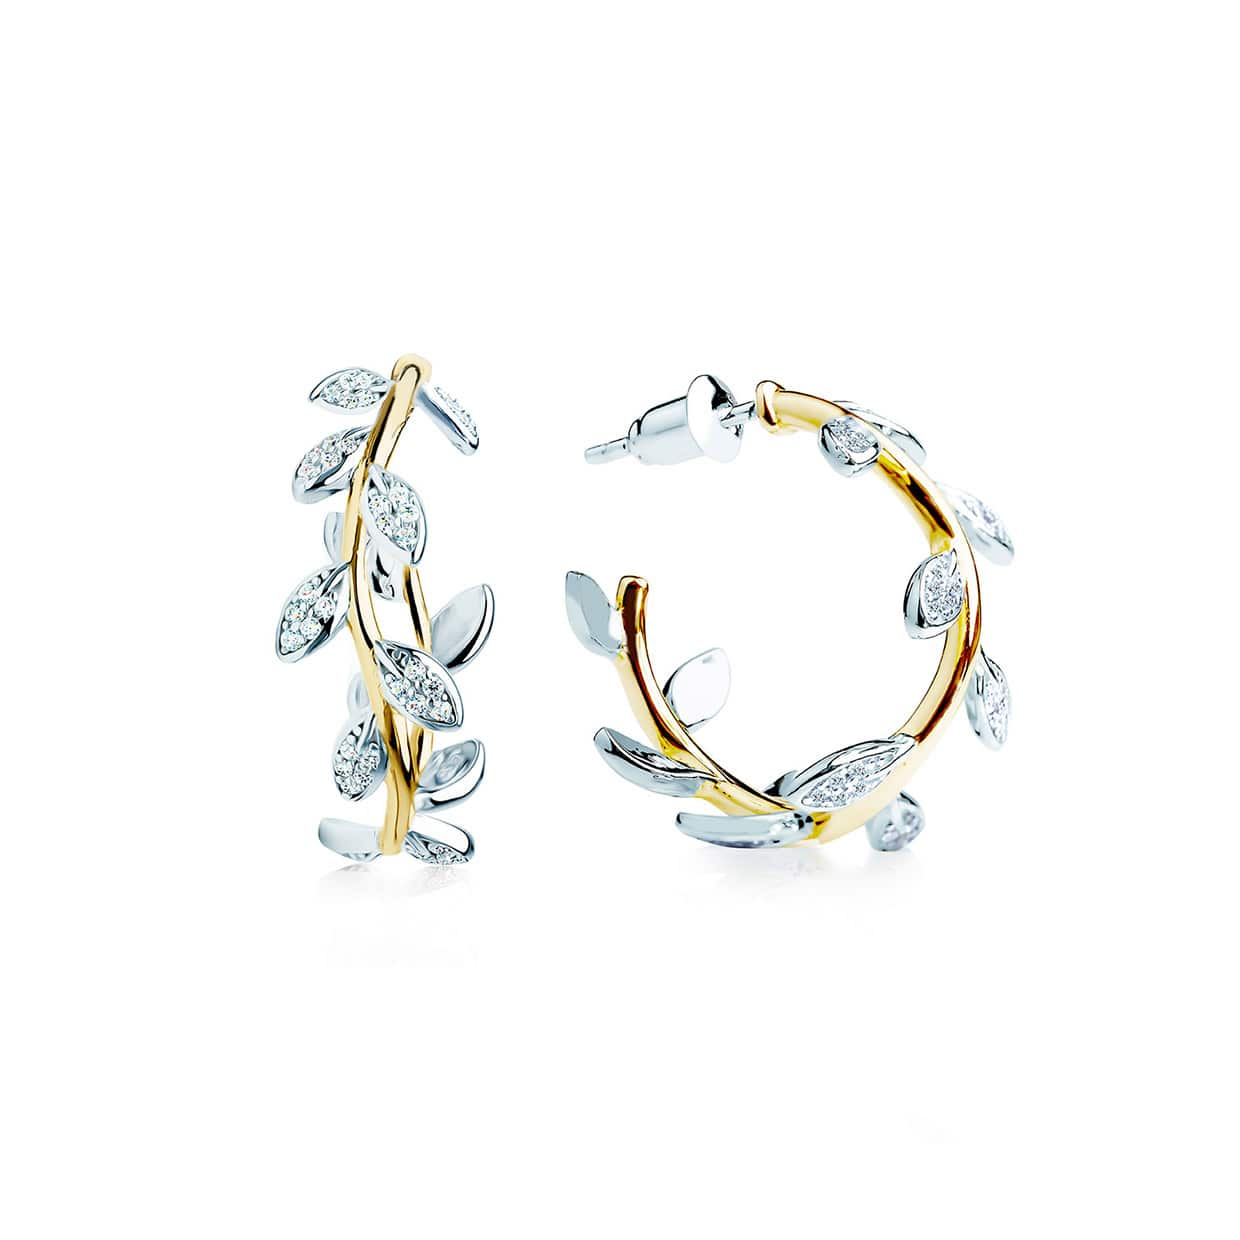 Flora Gold & Silver Leaf Hoop Earrings - Abelstedt